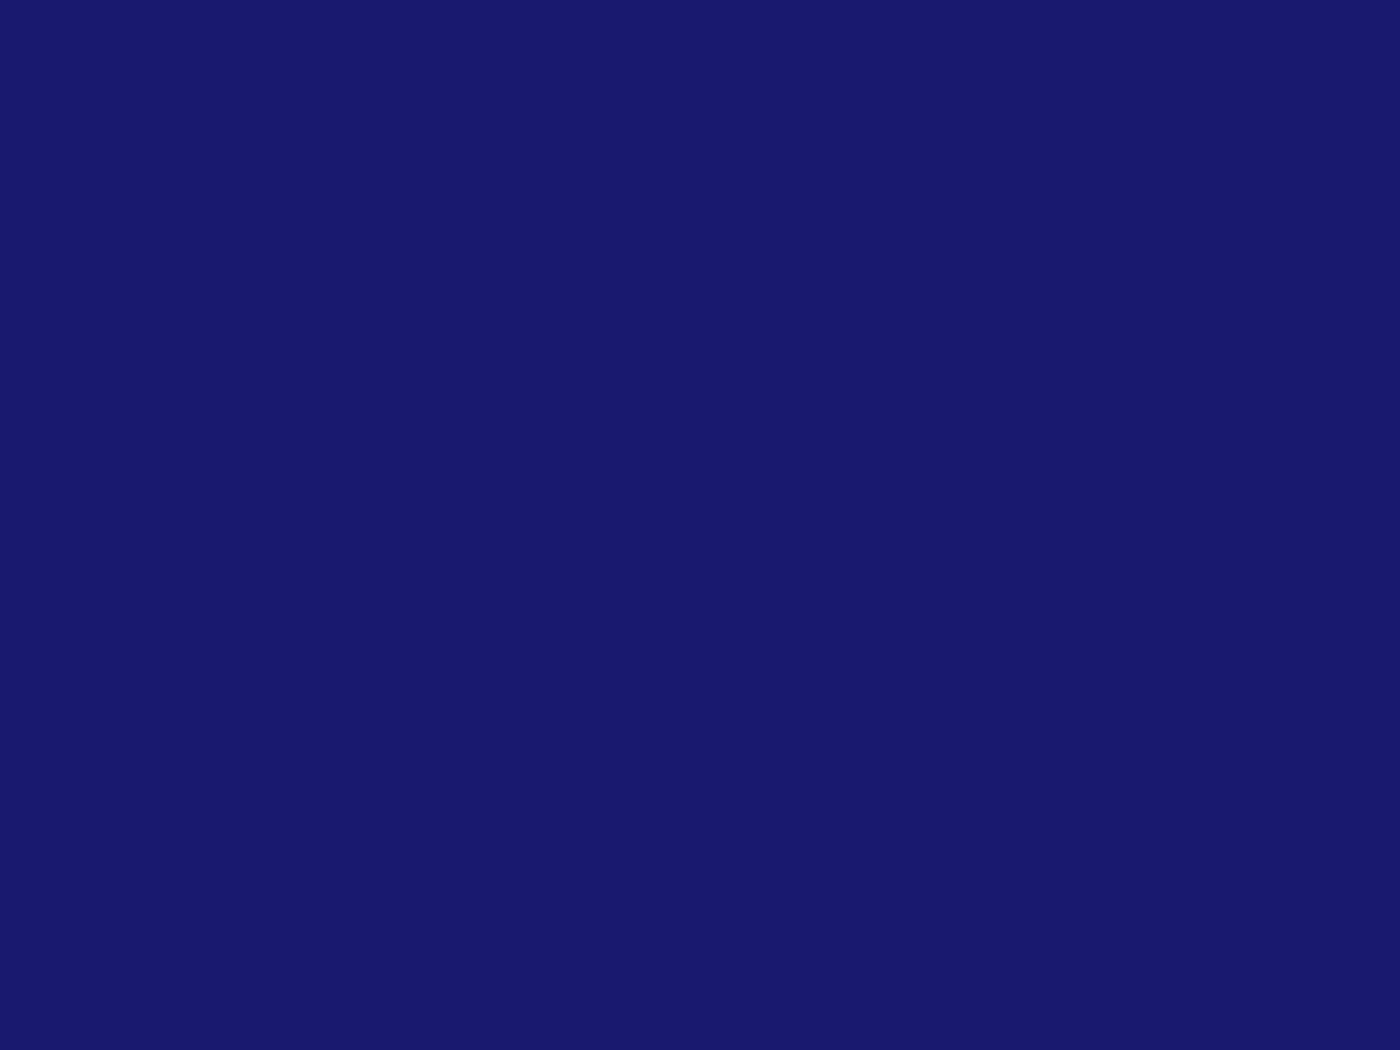 1400x1050 Midnight Blue Solid Color Background